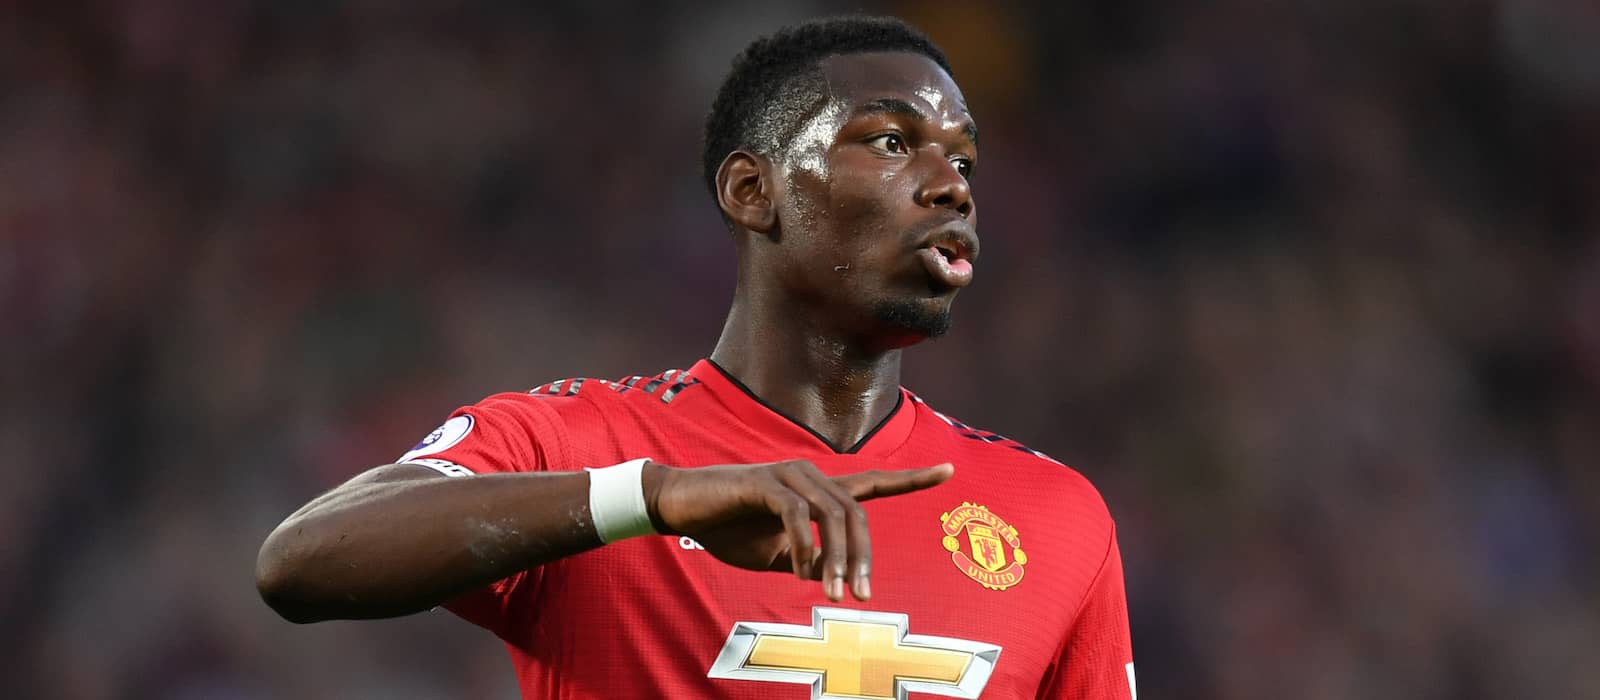 Luis Suarez: Paul Pogba is always welcome at Barcelona